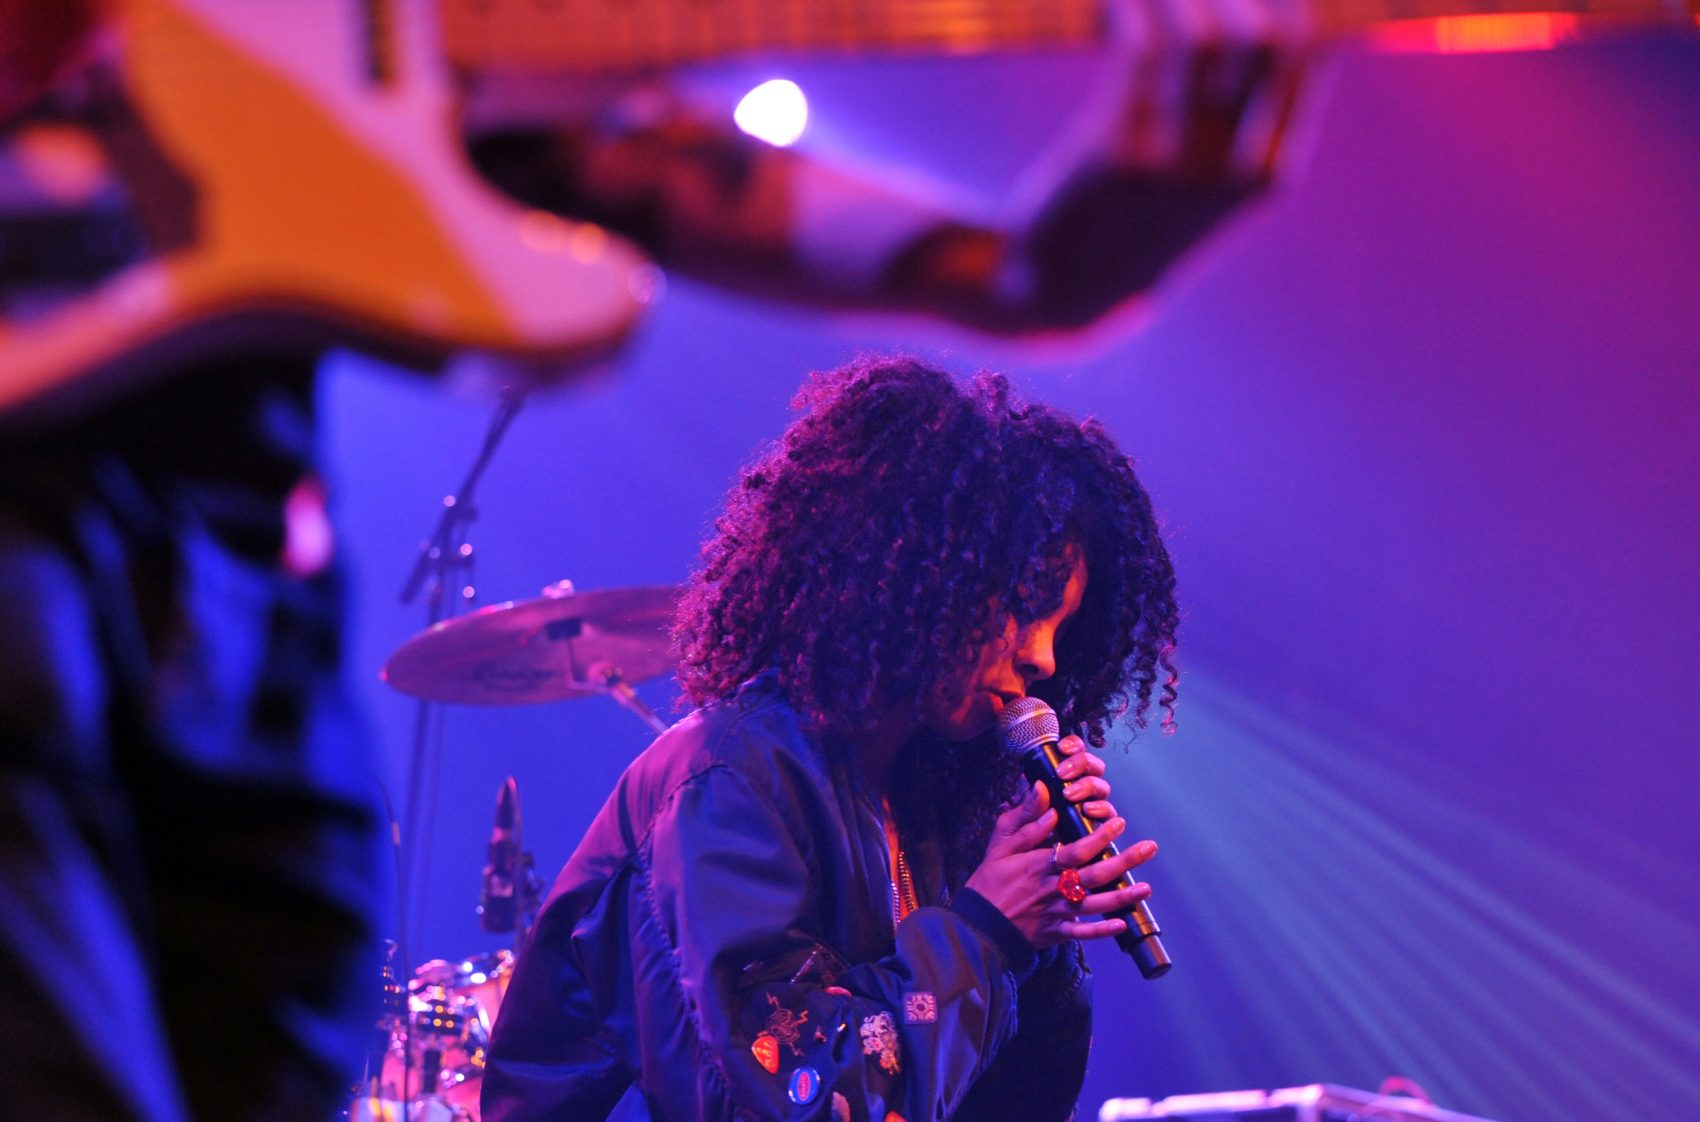 English reggae singer Hollie Cook performs on stage during the 36th edition of Le Printemps de Bourges rock and pop festival in Bourges, central France, on April 27, 2012. (Alain Jocard/AFP/GettyImages)